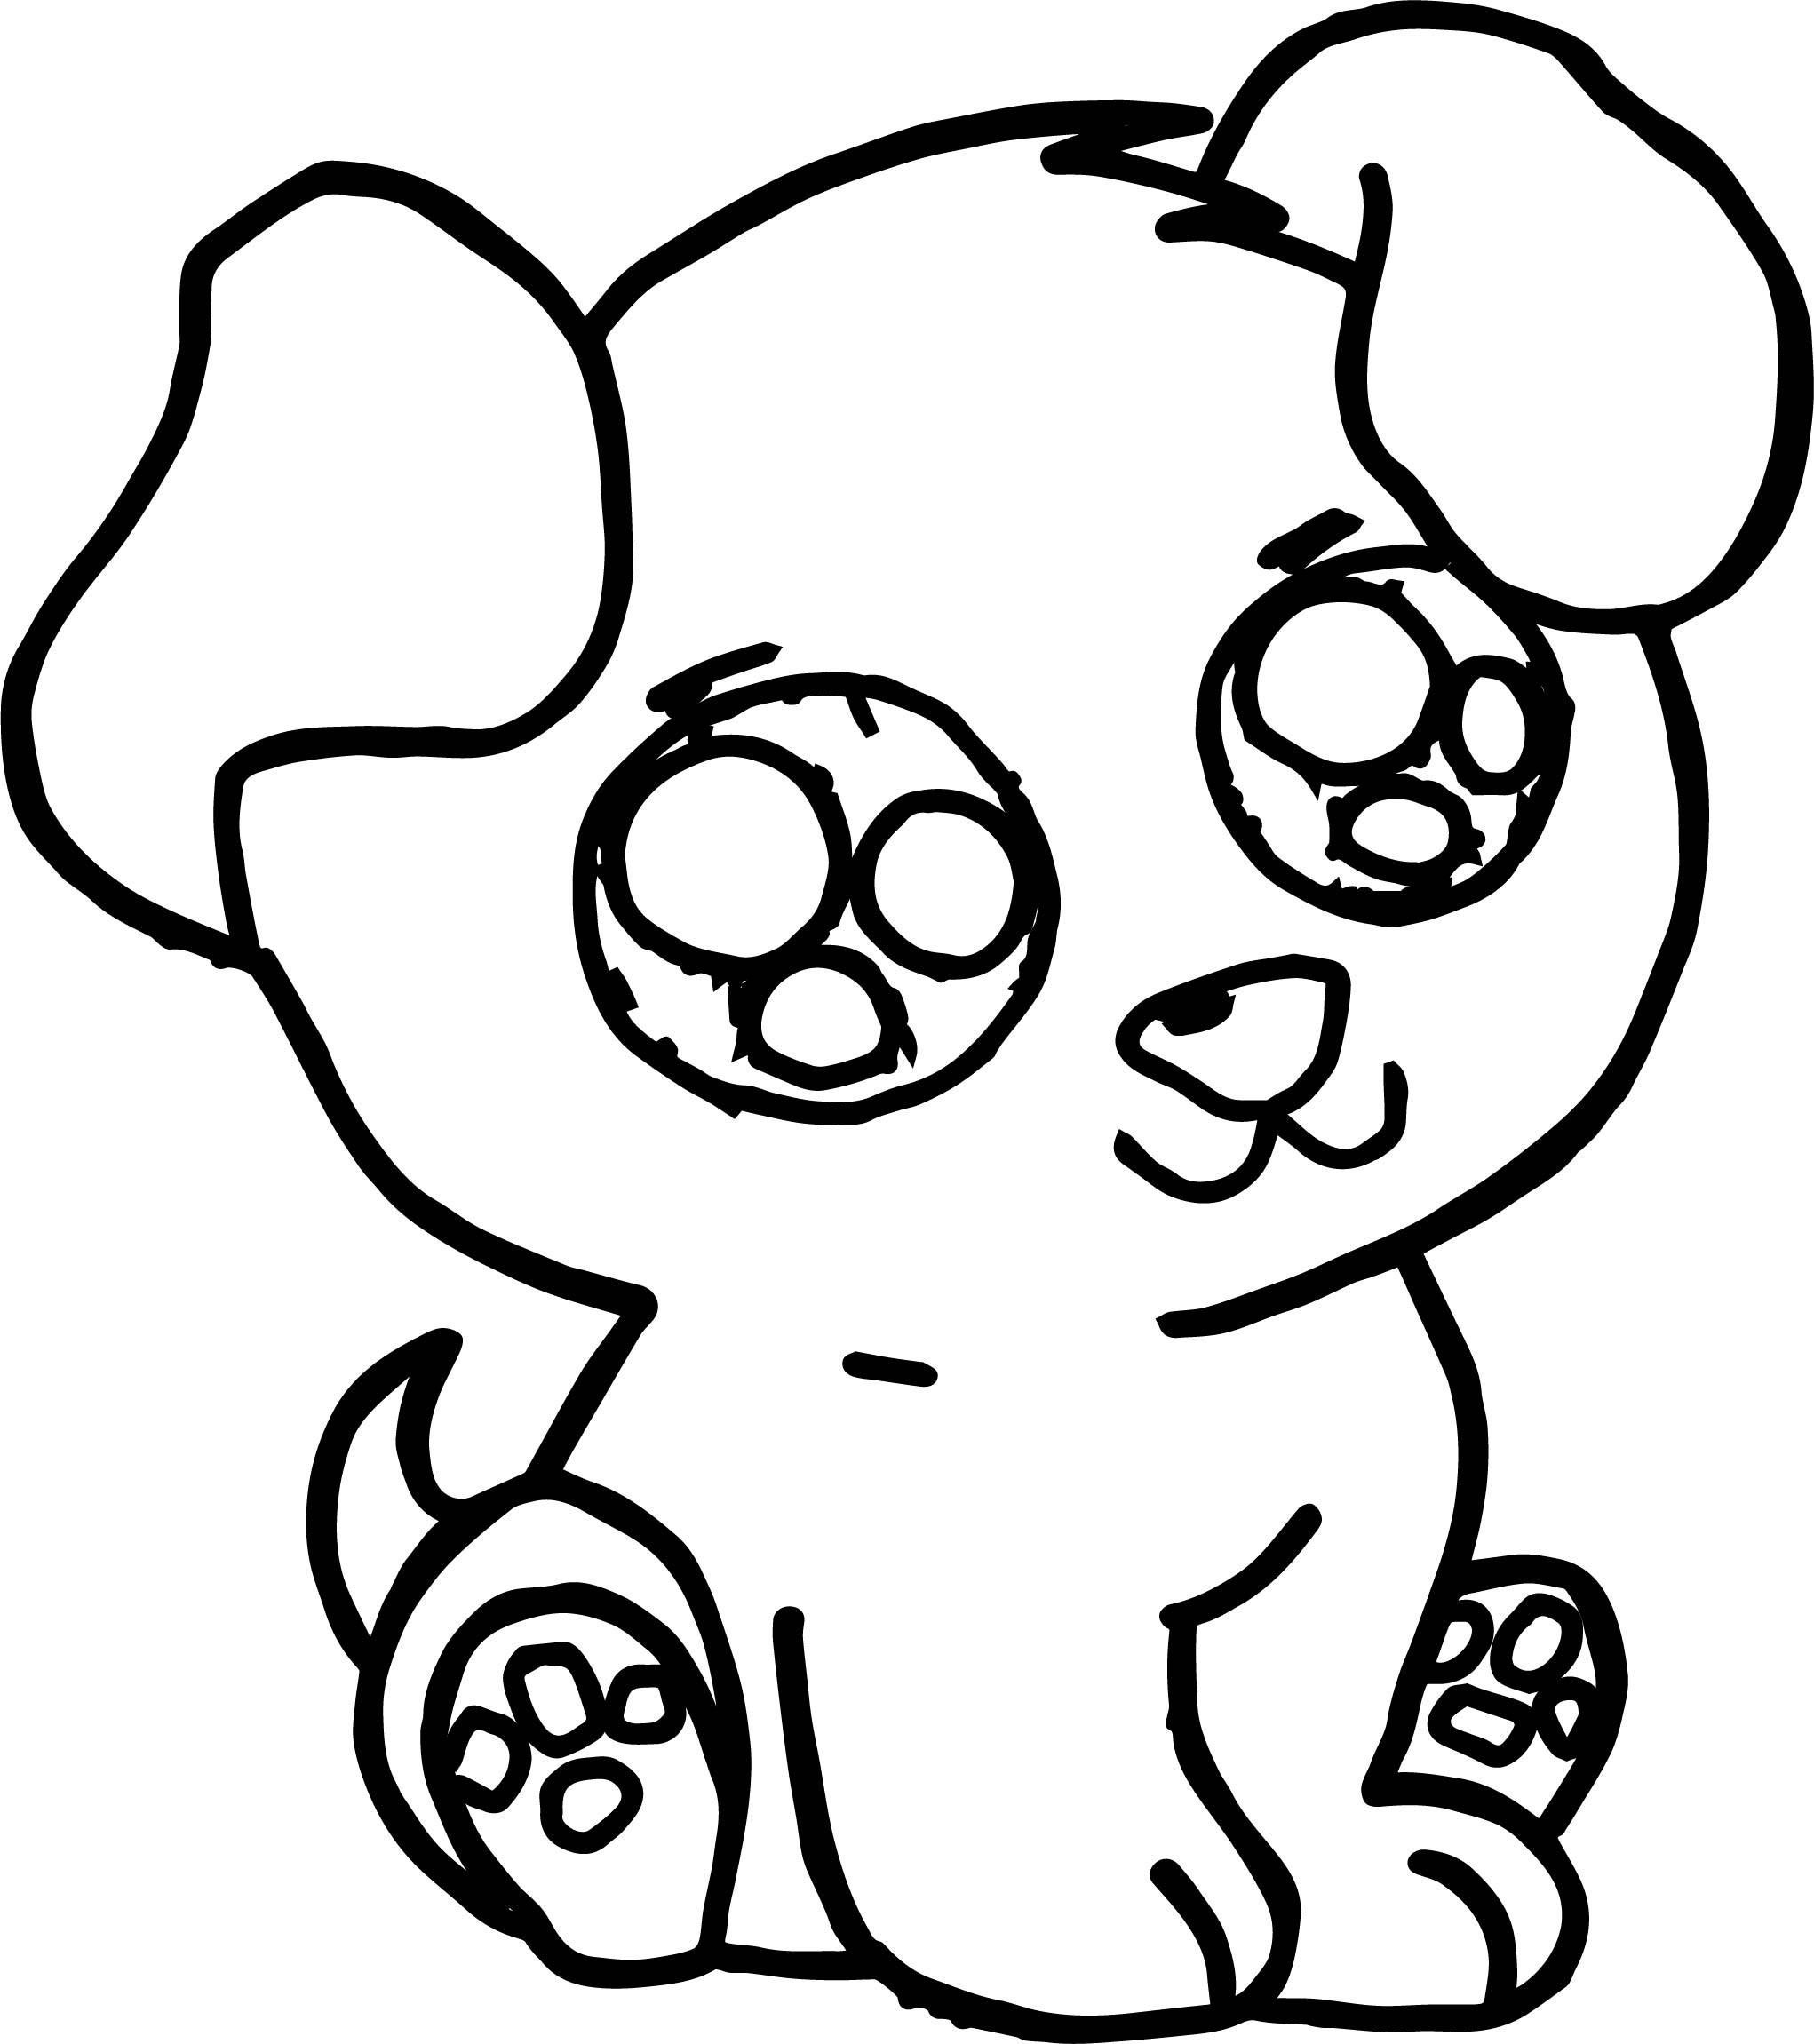 Boxer Puppy Coloring Pages - From the thousand images on ...